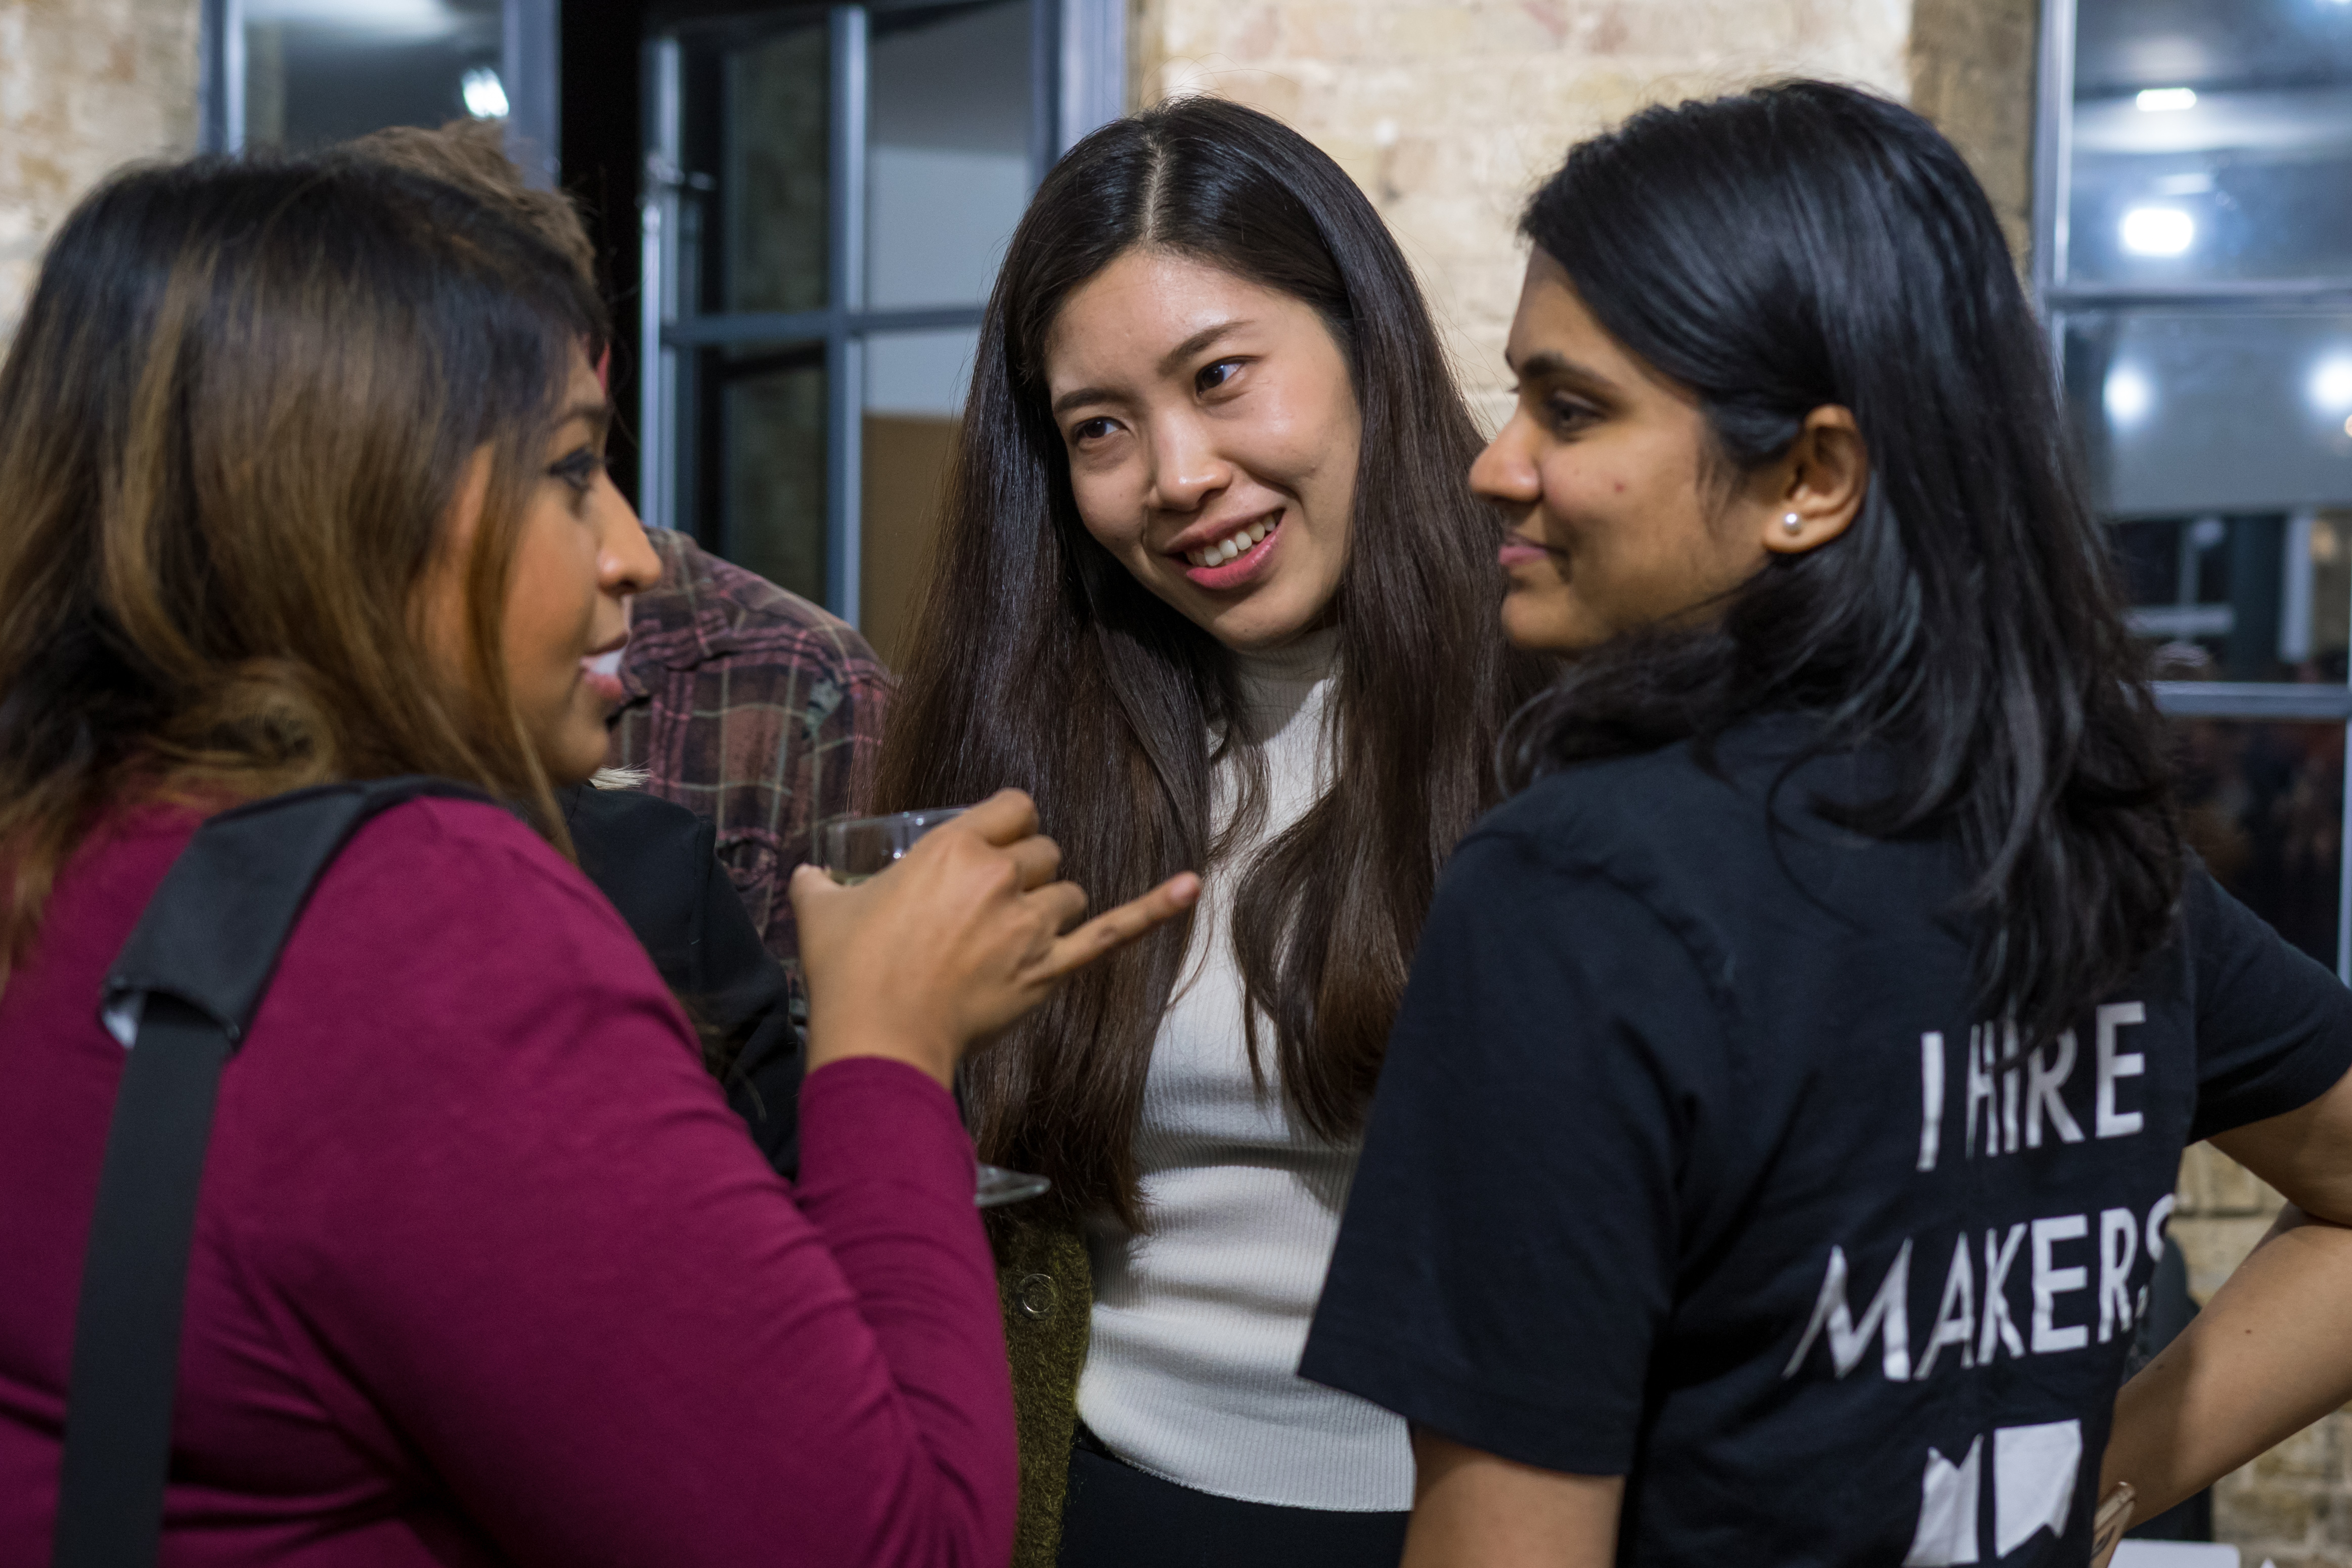 Women chatting at Makers event